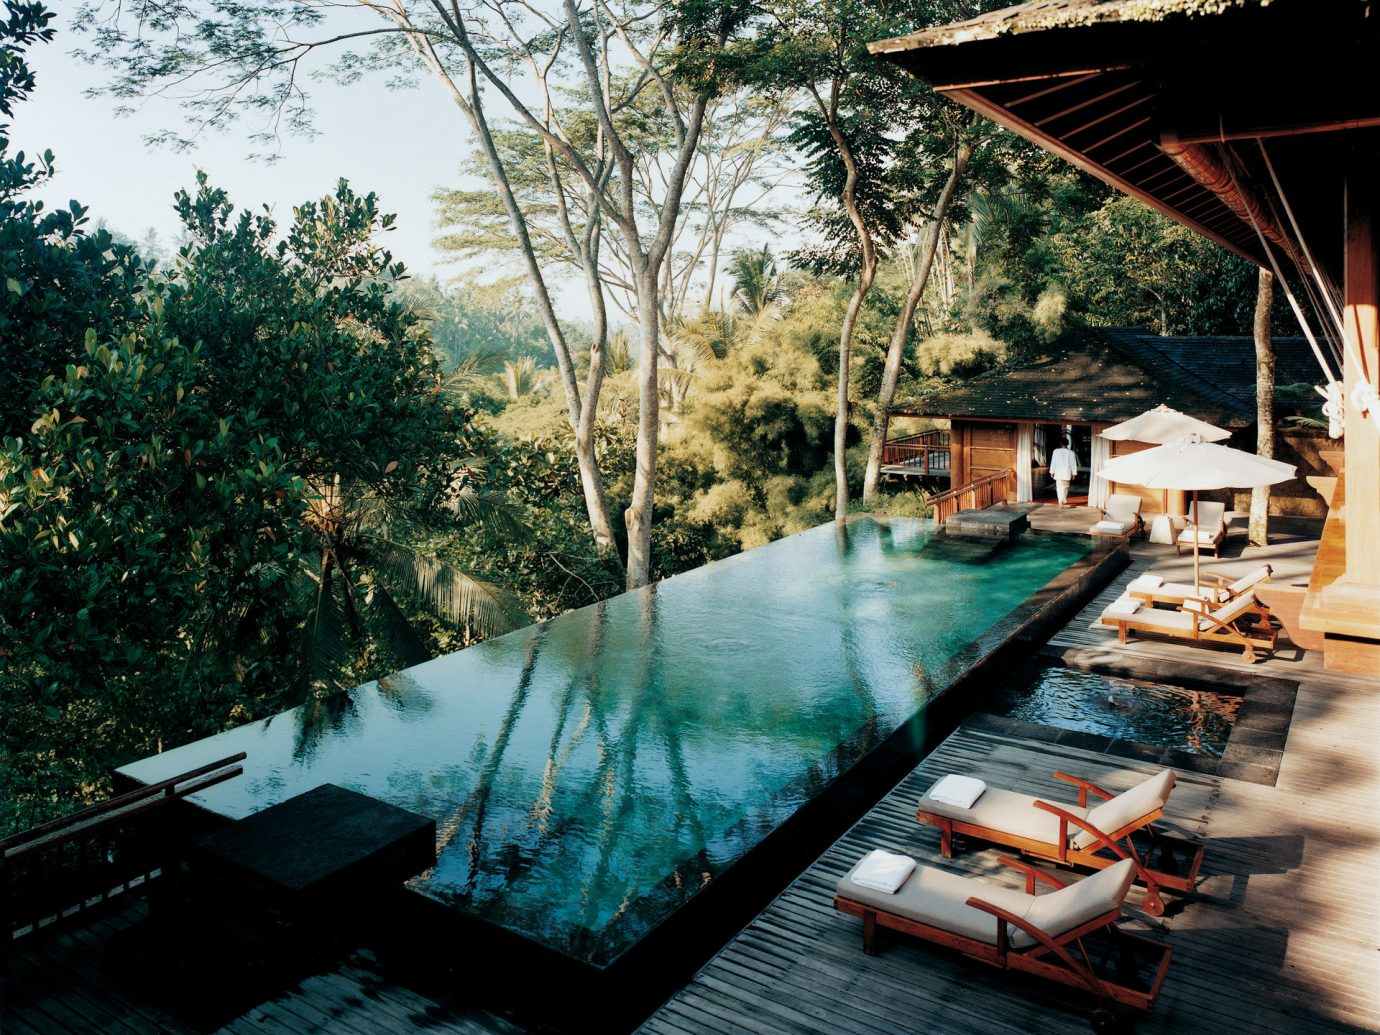 Style + Design tree outdoor leisure swimming pool estate backyard reflection Resort Boat several dock